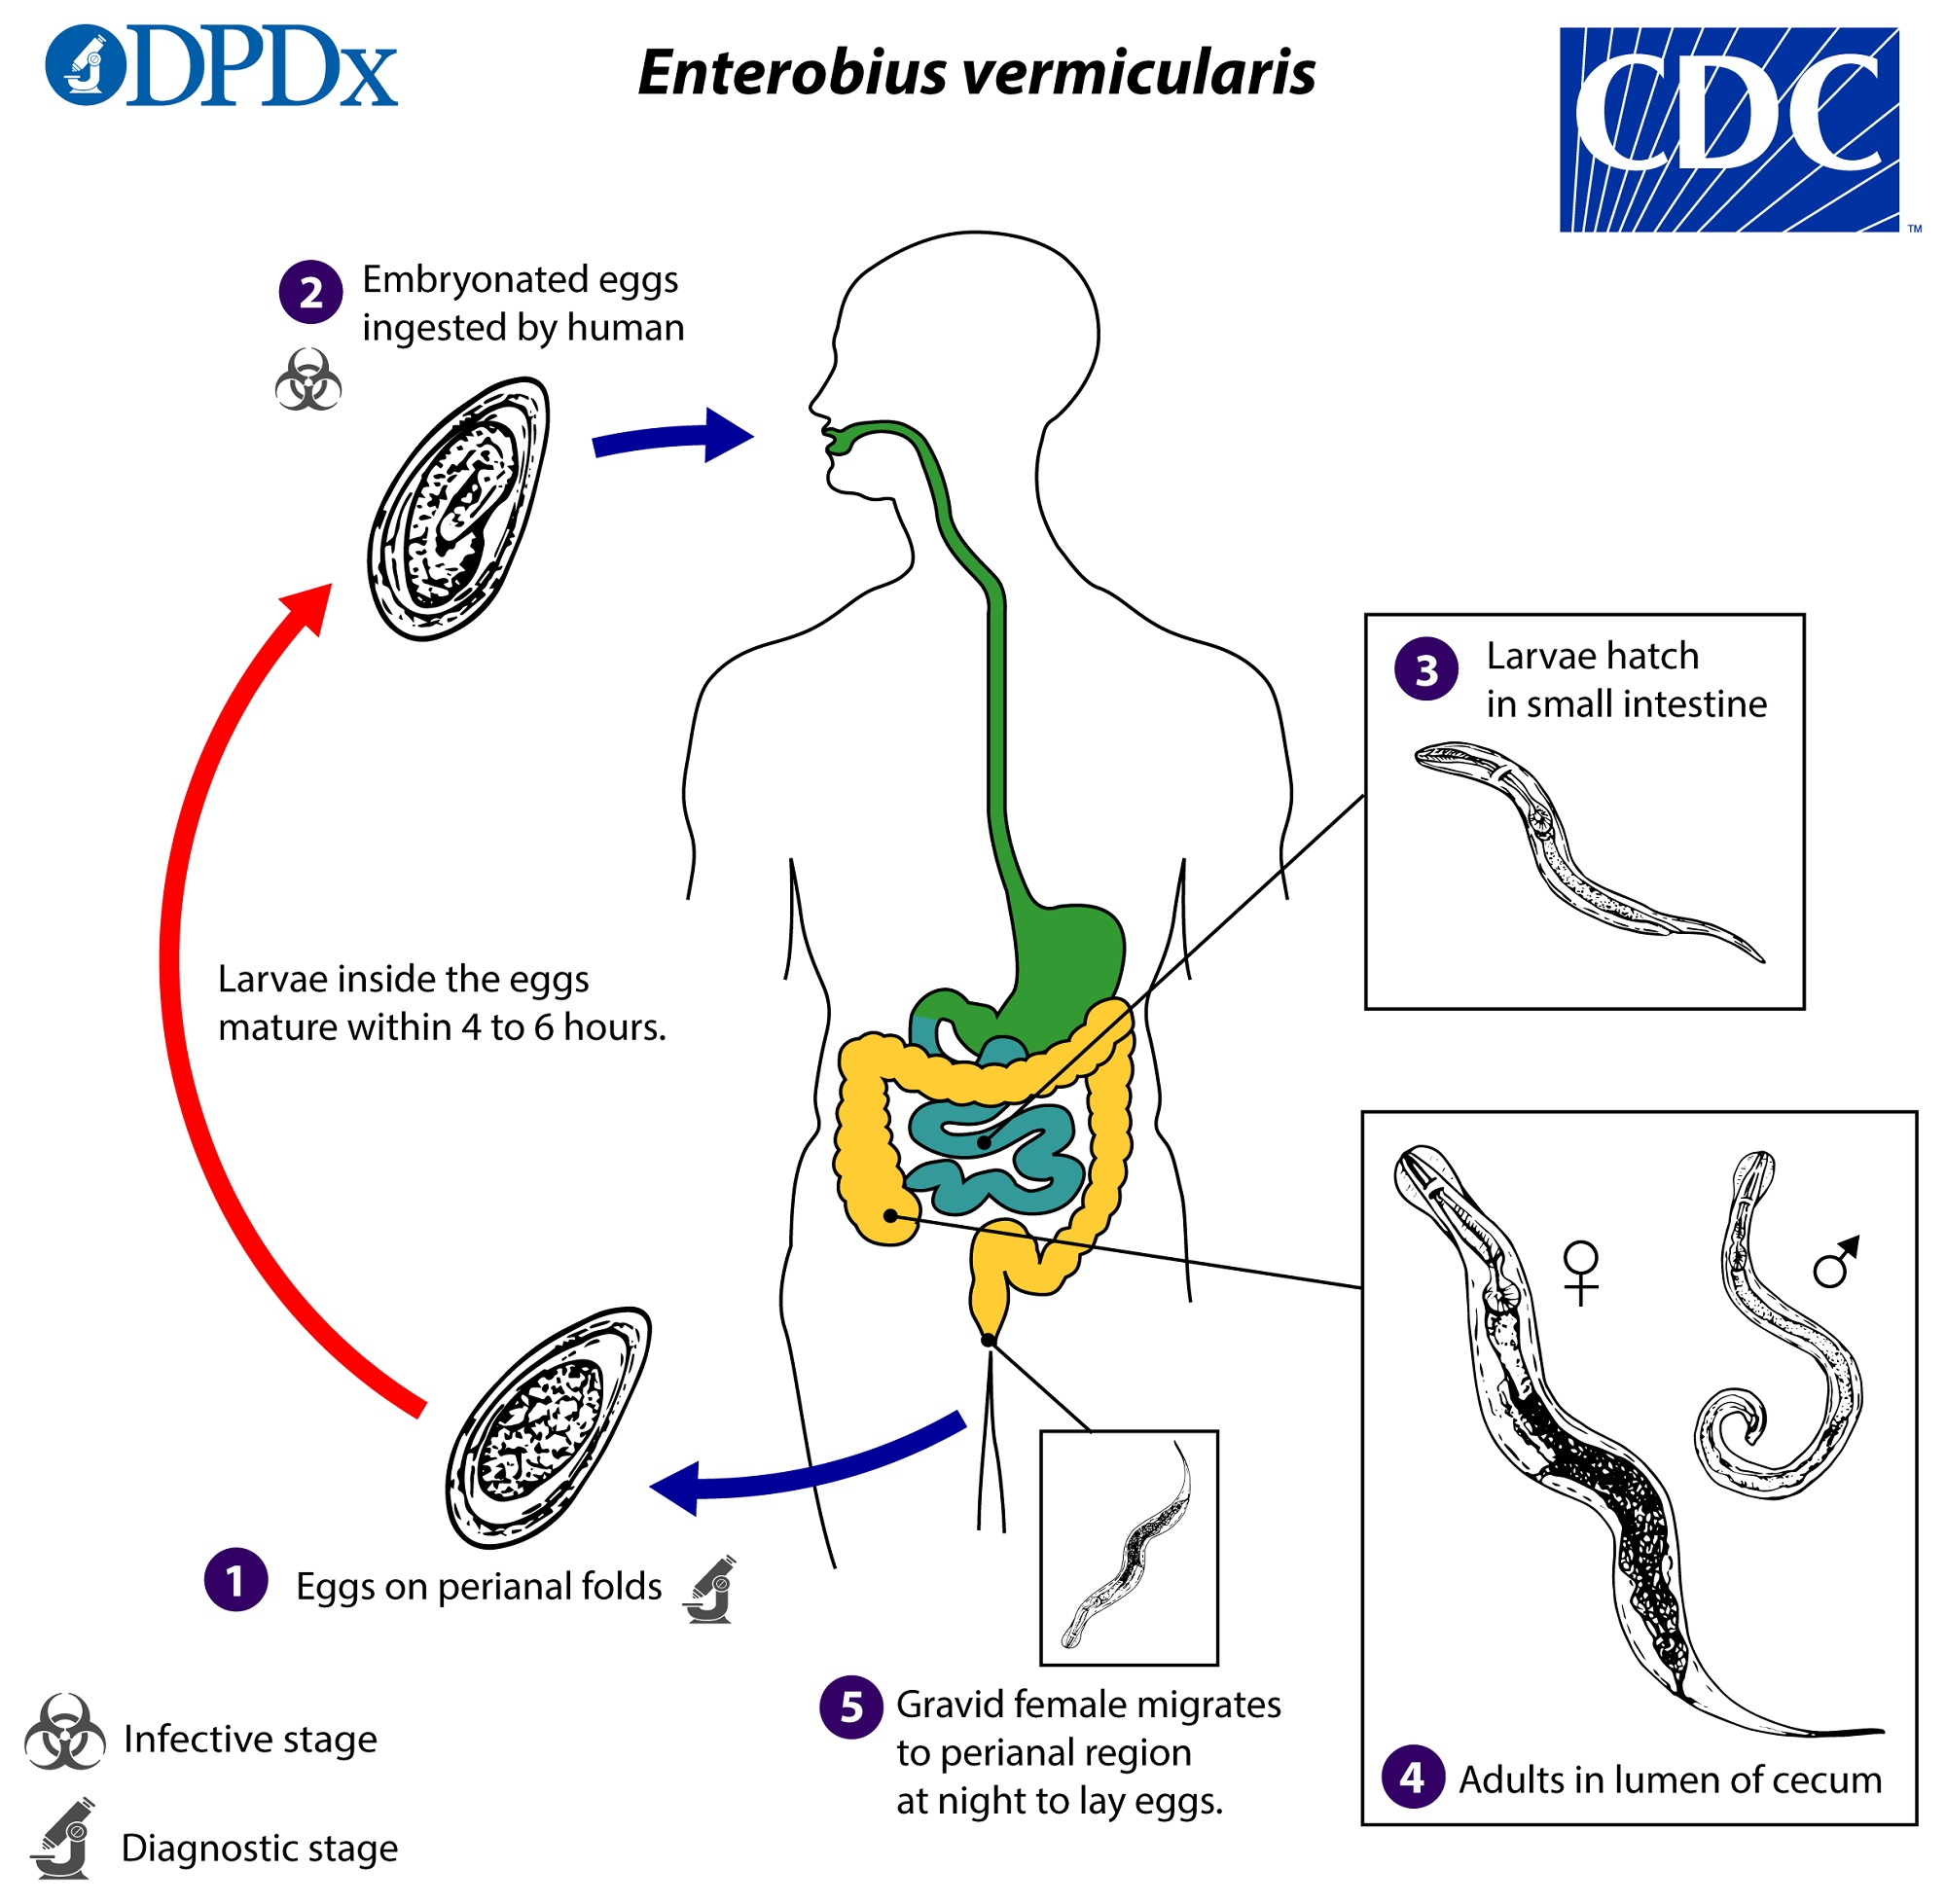 enterobius vermicularis( the pinworm)